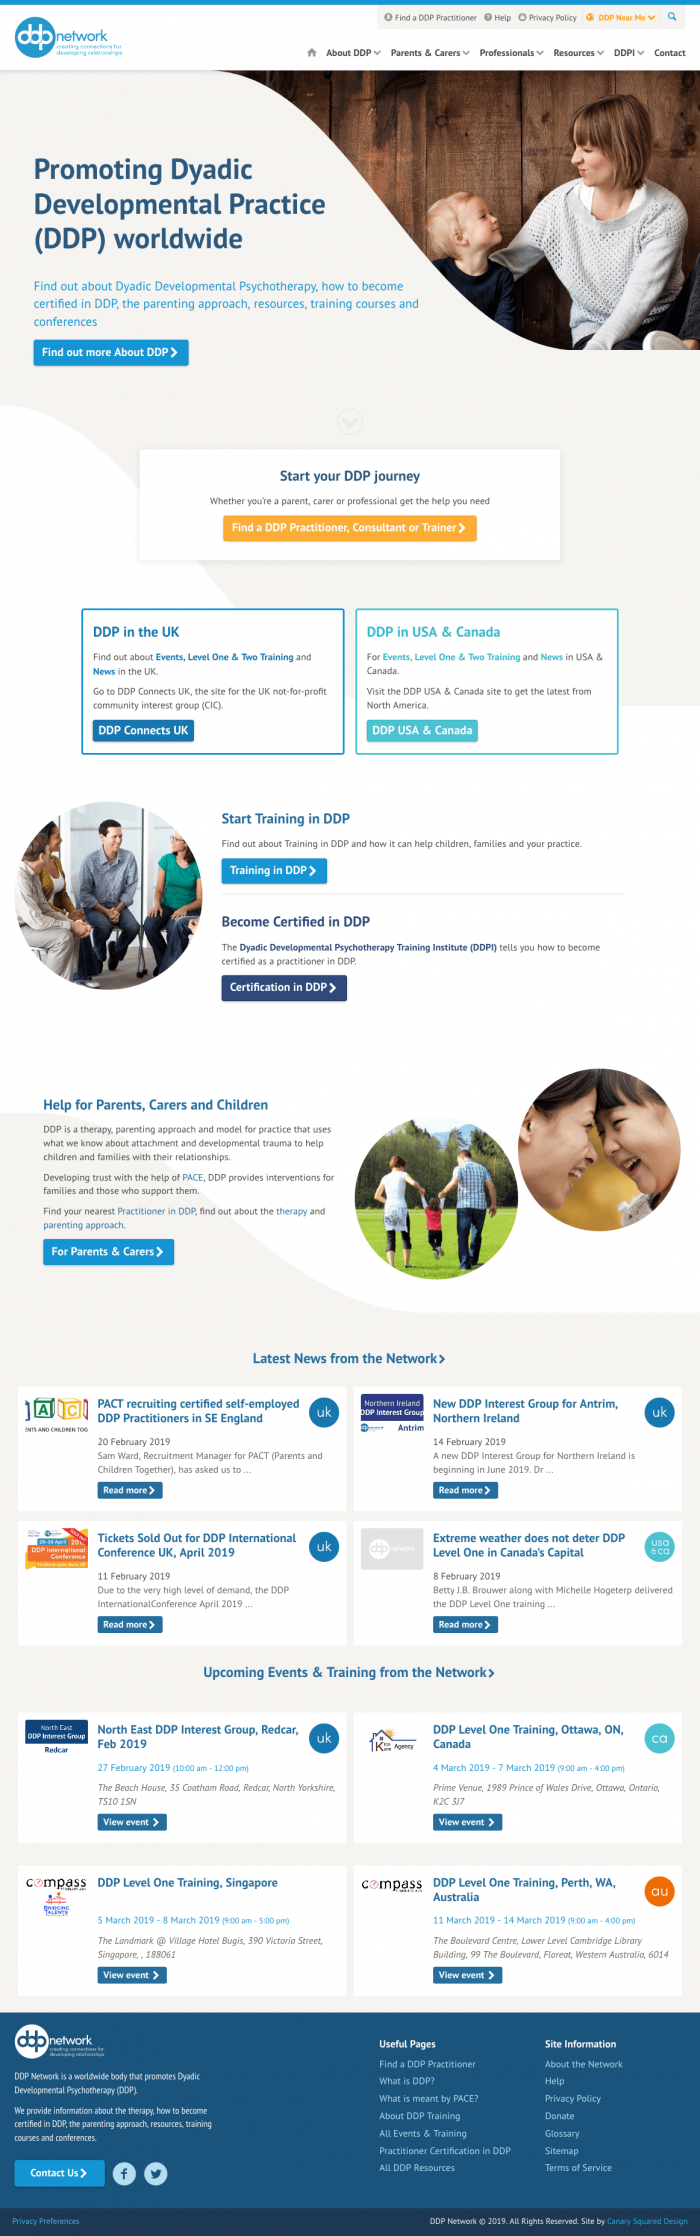 DDP Network - The home of Dyadic Developmental Psychotherapy